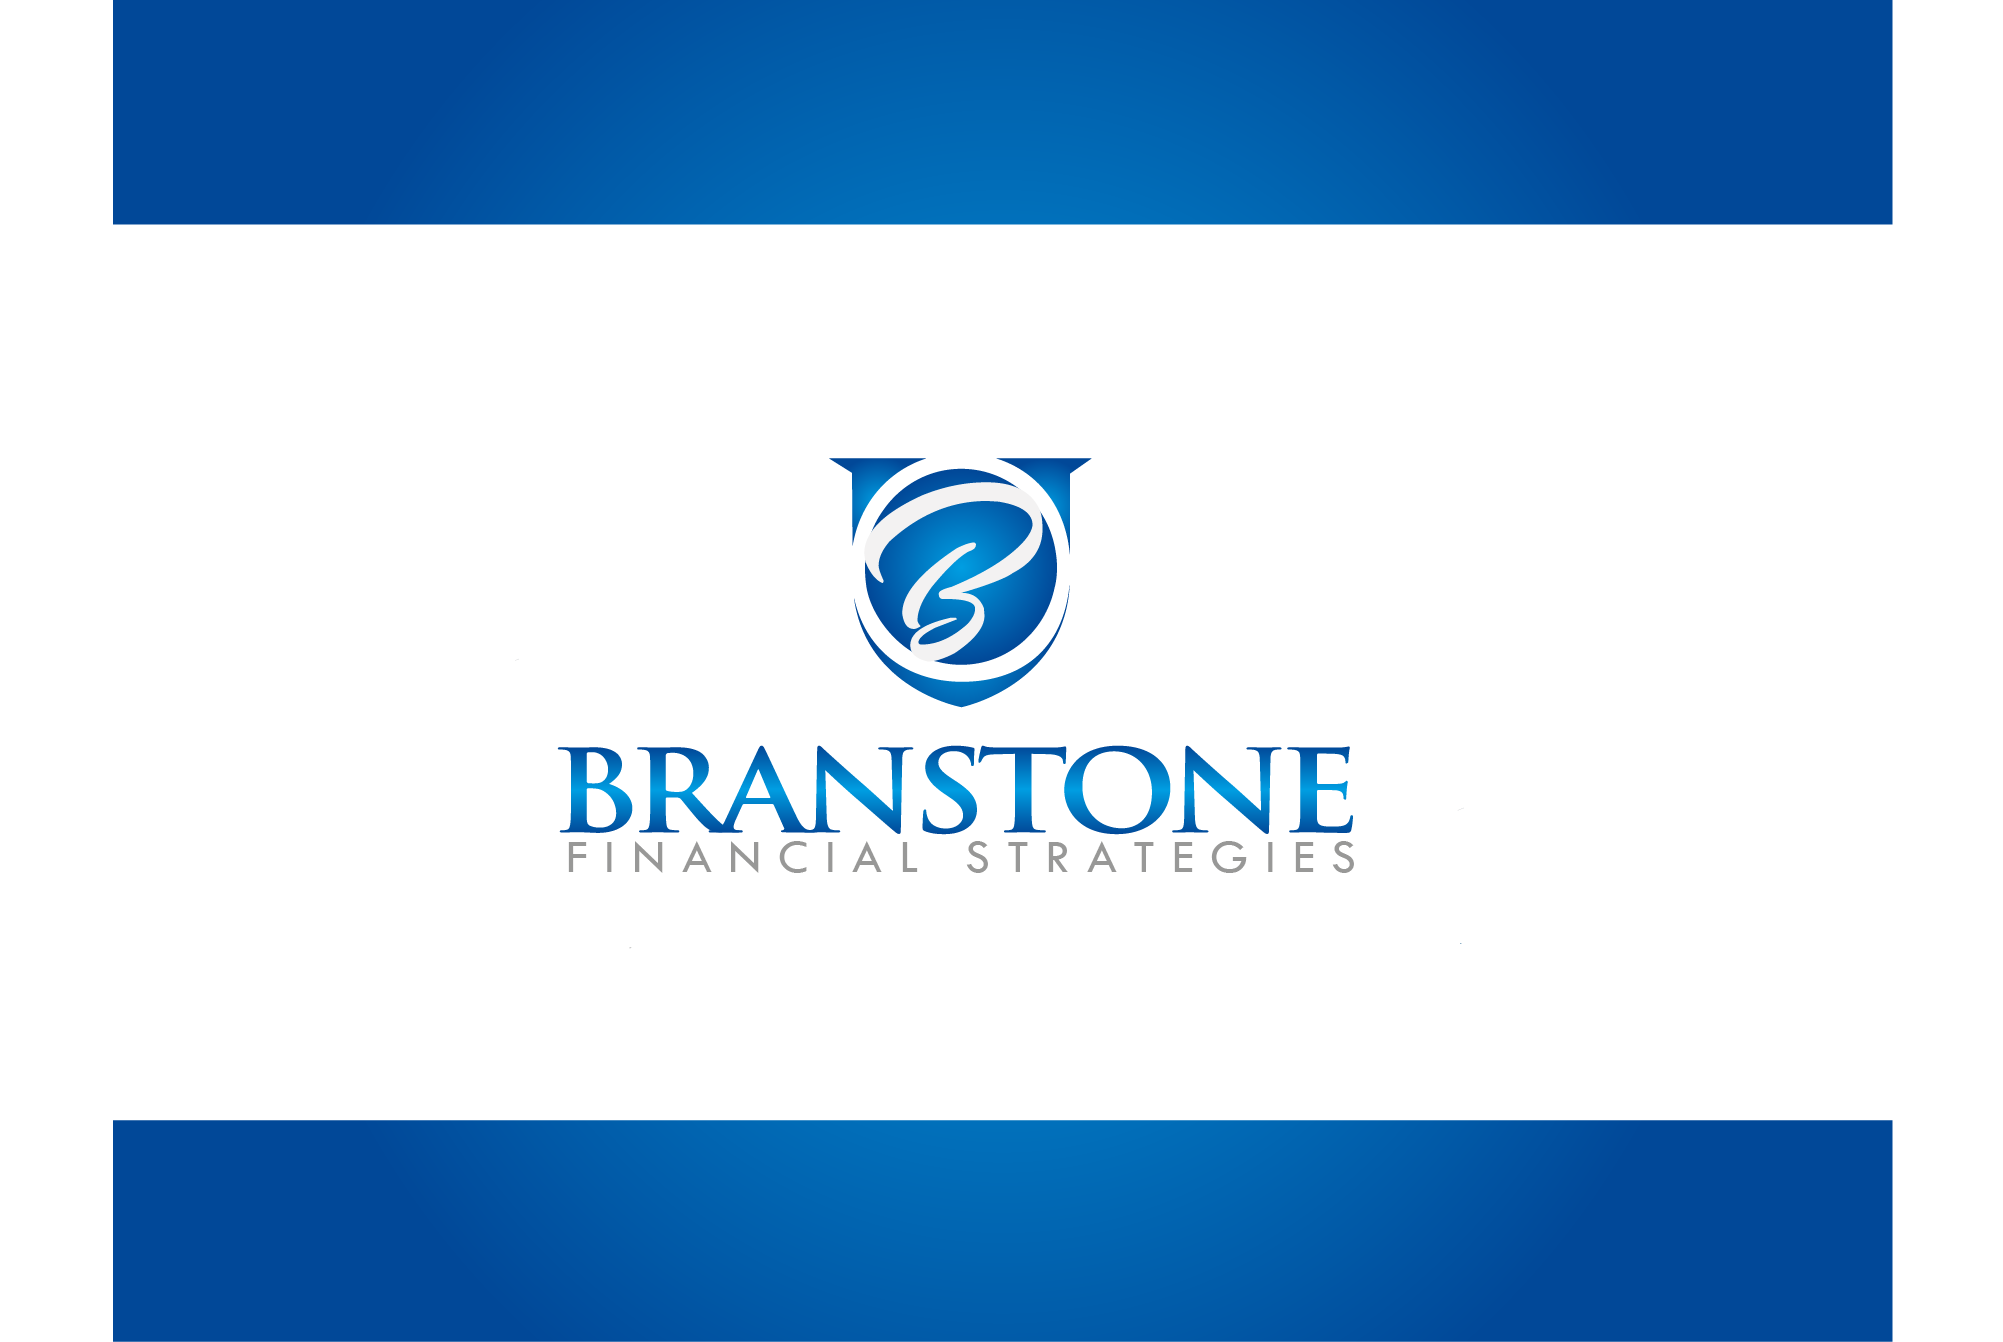 Logo Design by Ryan Hortizuela - Entry No. 341 in the Logo Design Contest Inspiring Logo Design for Branstone Financial Strategies.